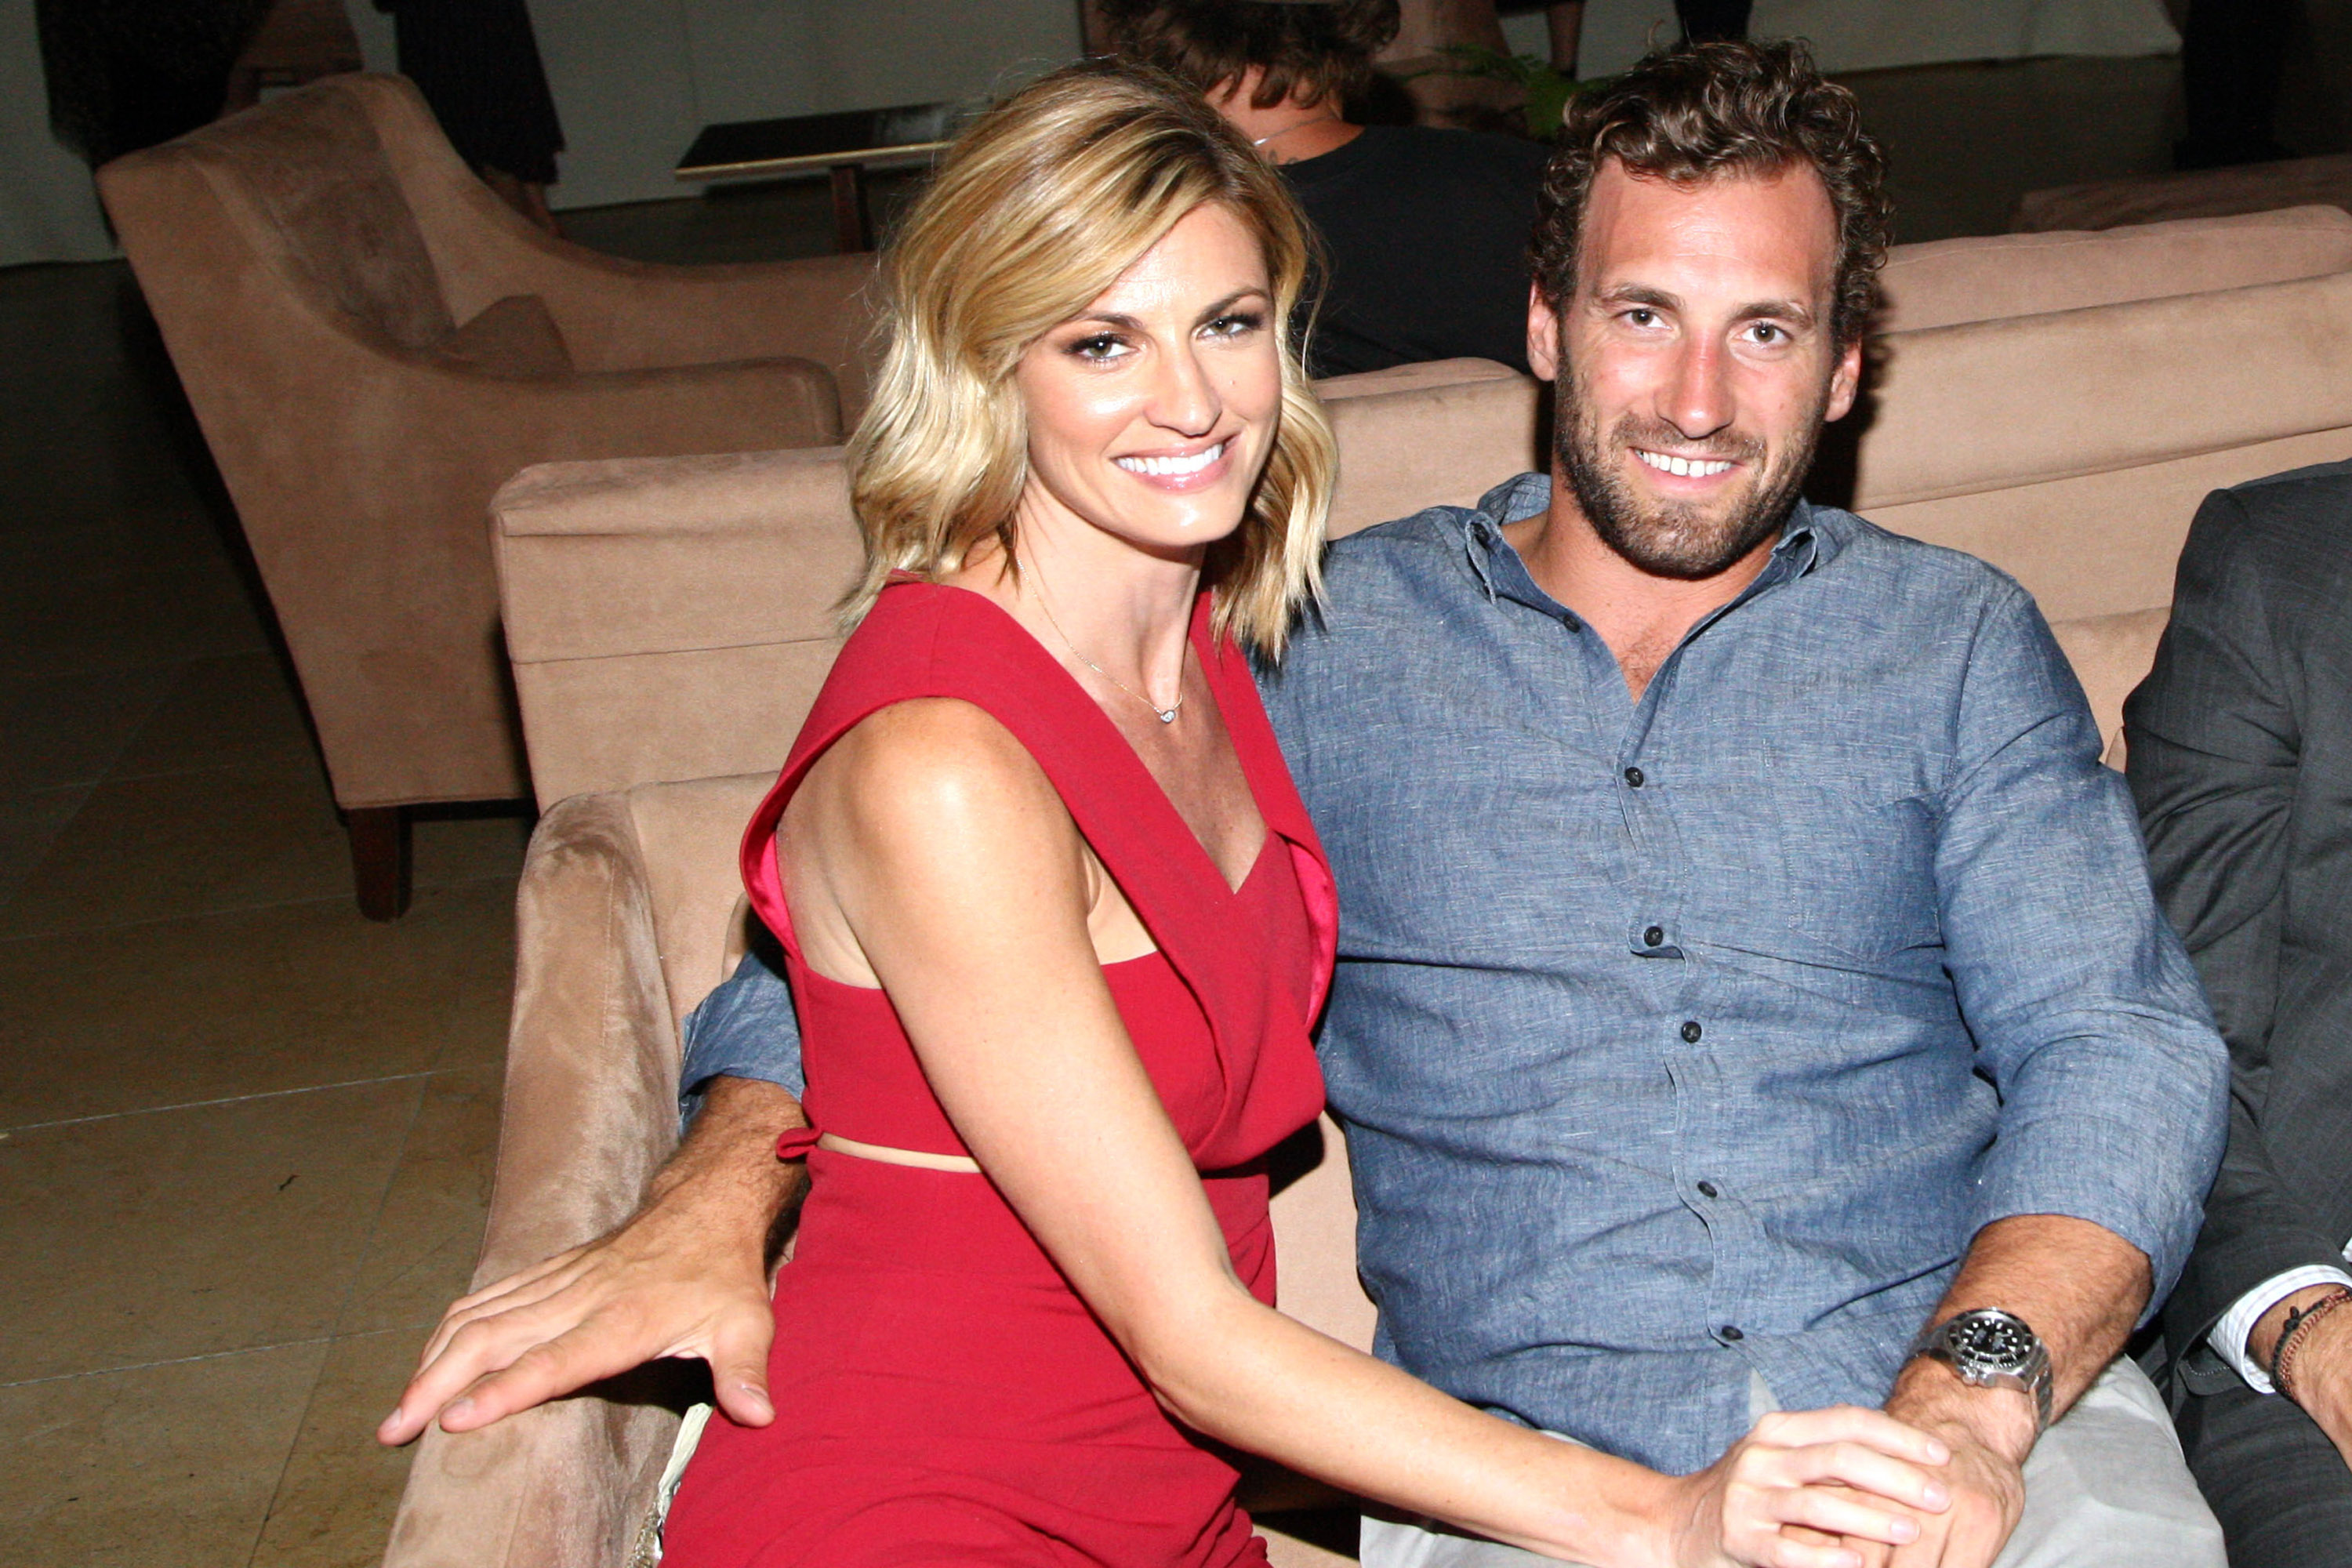 WEST HOLLYWOOD, CA - JULY 16: TV personality Erin Andrews and hockey player Jarret Stoll attend the Amazon Prime Summer Soiree hosted By Erin and Sara Foster held at Sunset Towers on July 16, 2015 in West Hollywood, California. (Photo by Tommaso Boddi/Getty Images for Amazon)